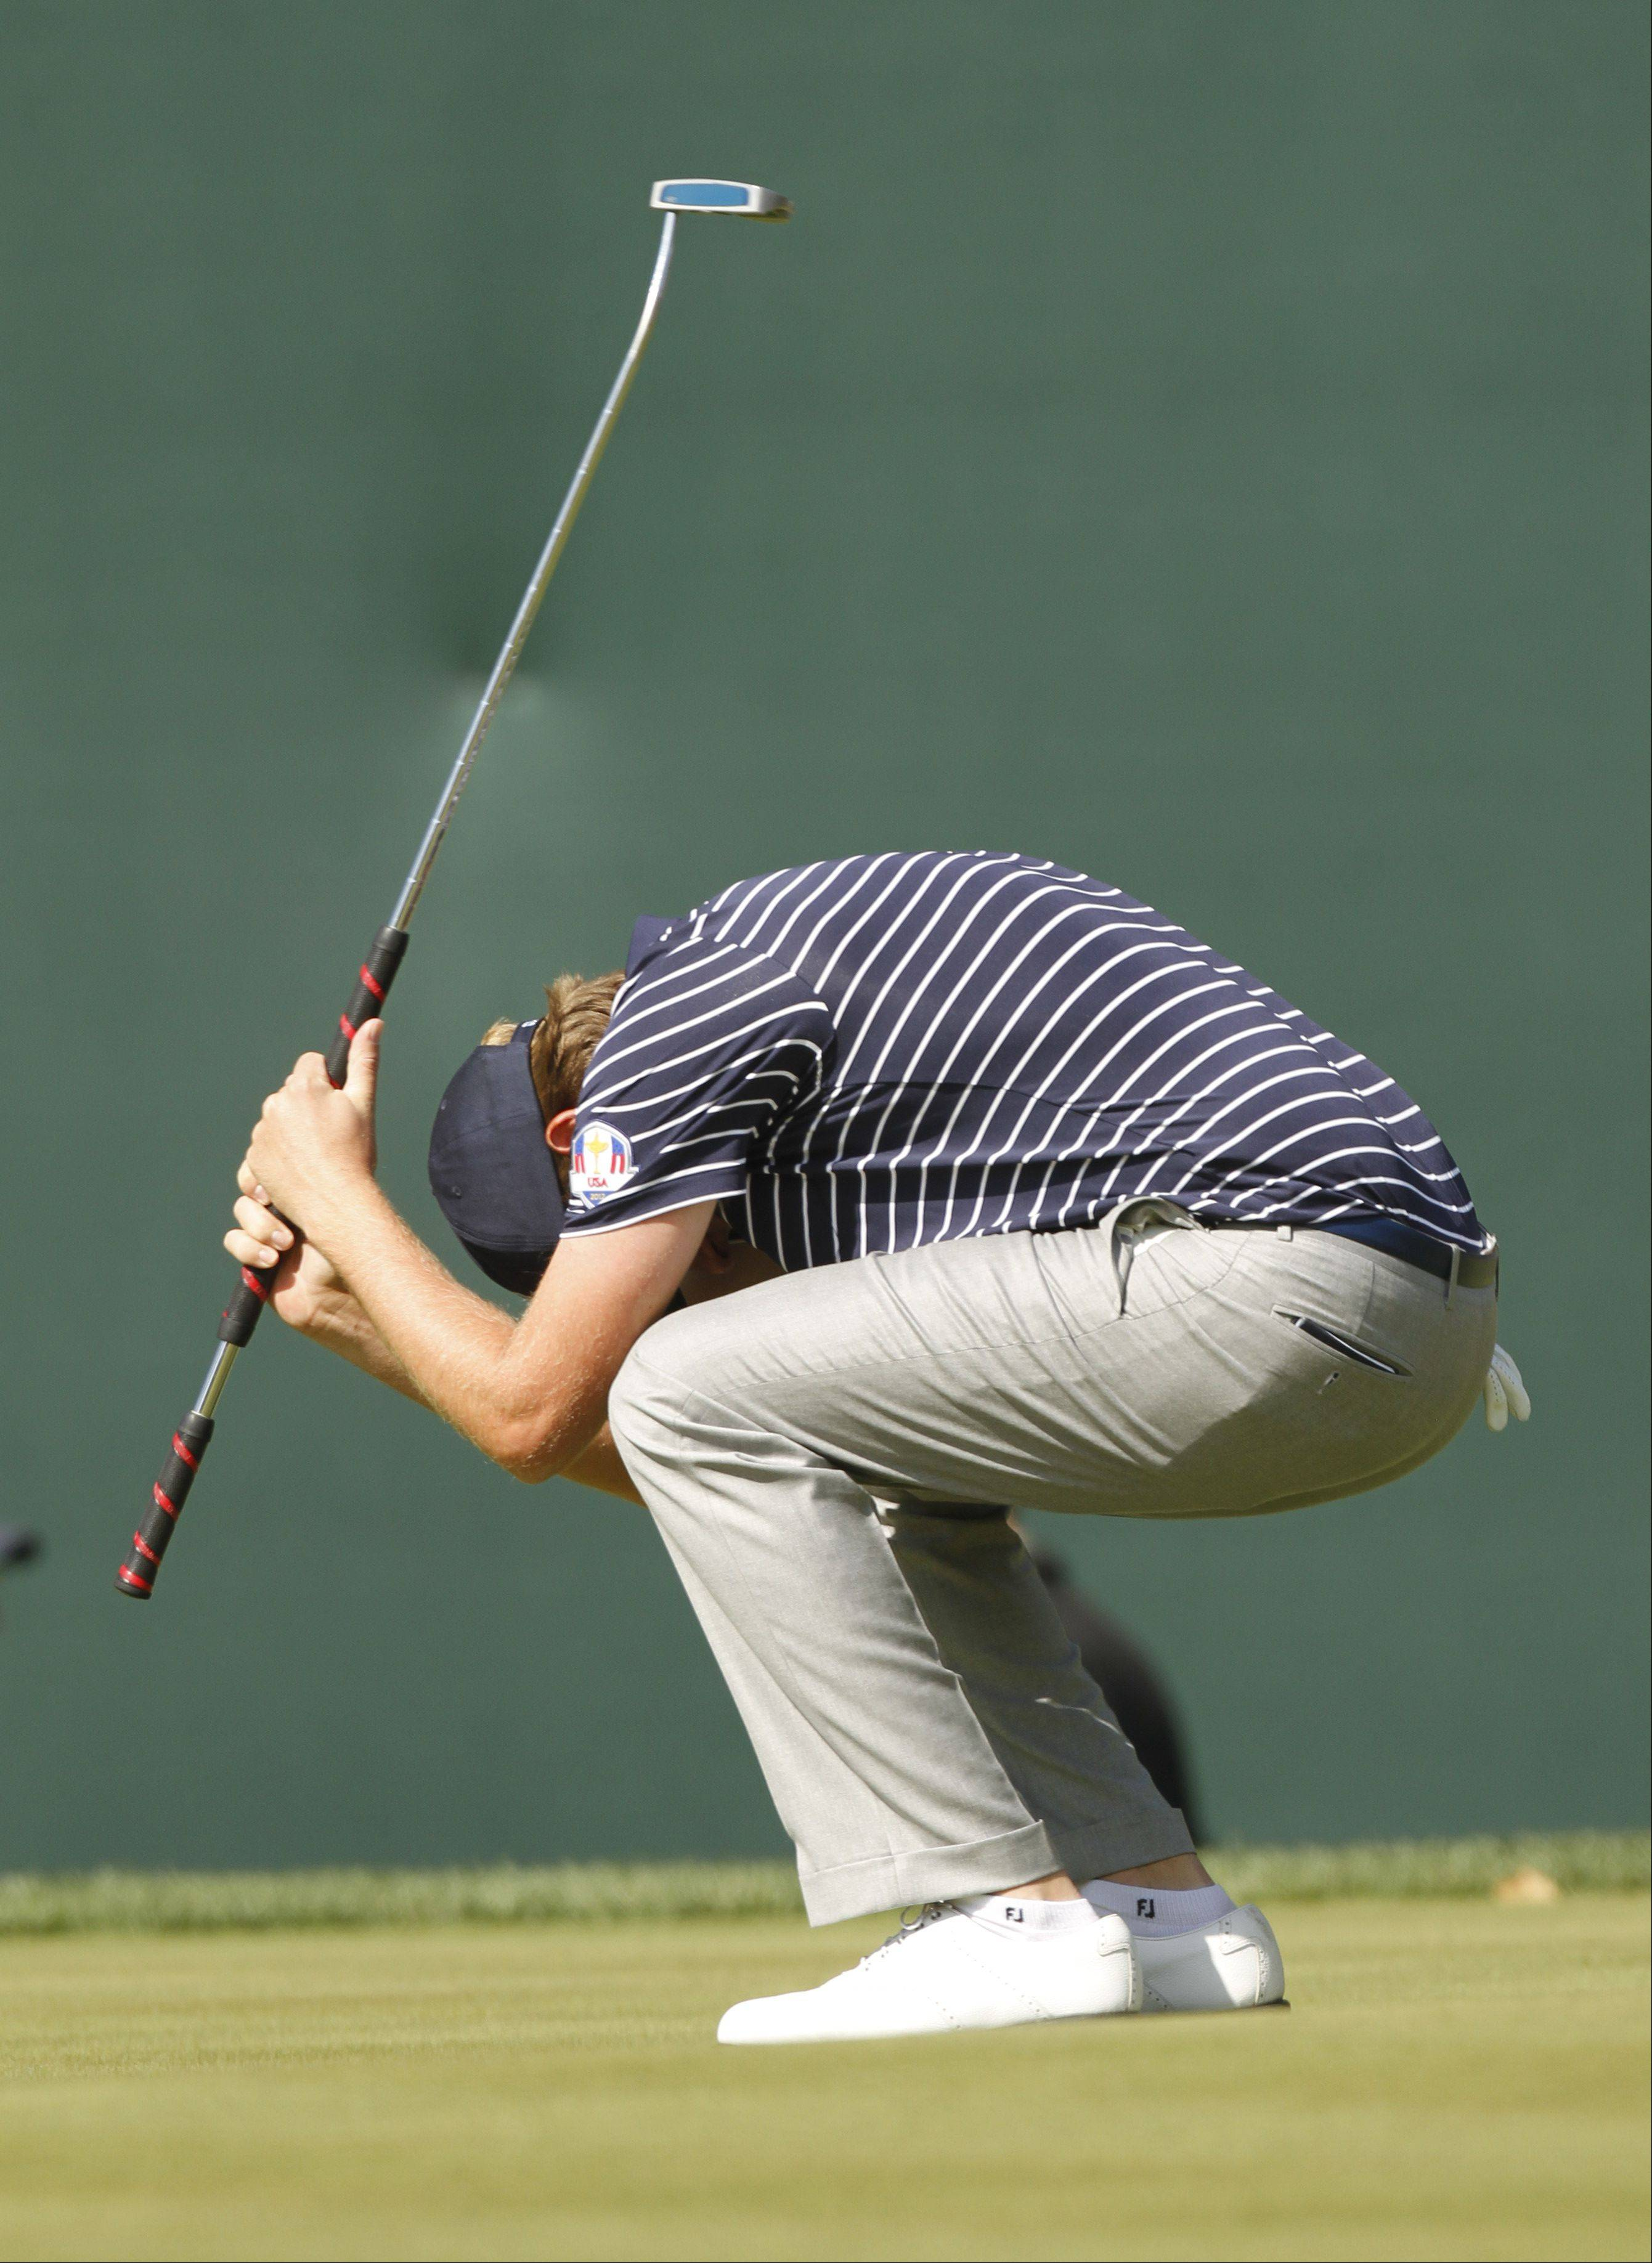 Webb Simpson reacts after missing his birdie putt on the 18th hole Saturday morning during day 2 of the 2012 Ryder Cup at Medinah Country Club.